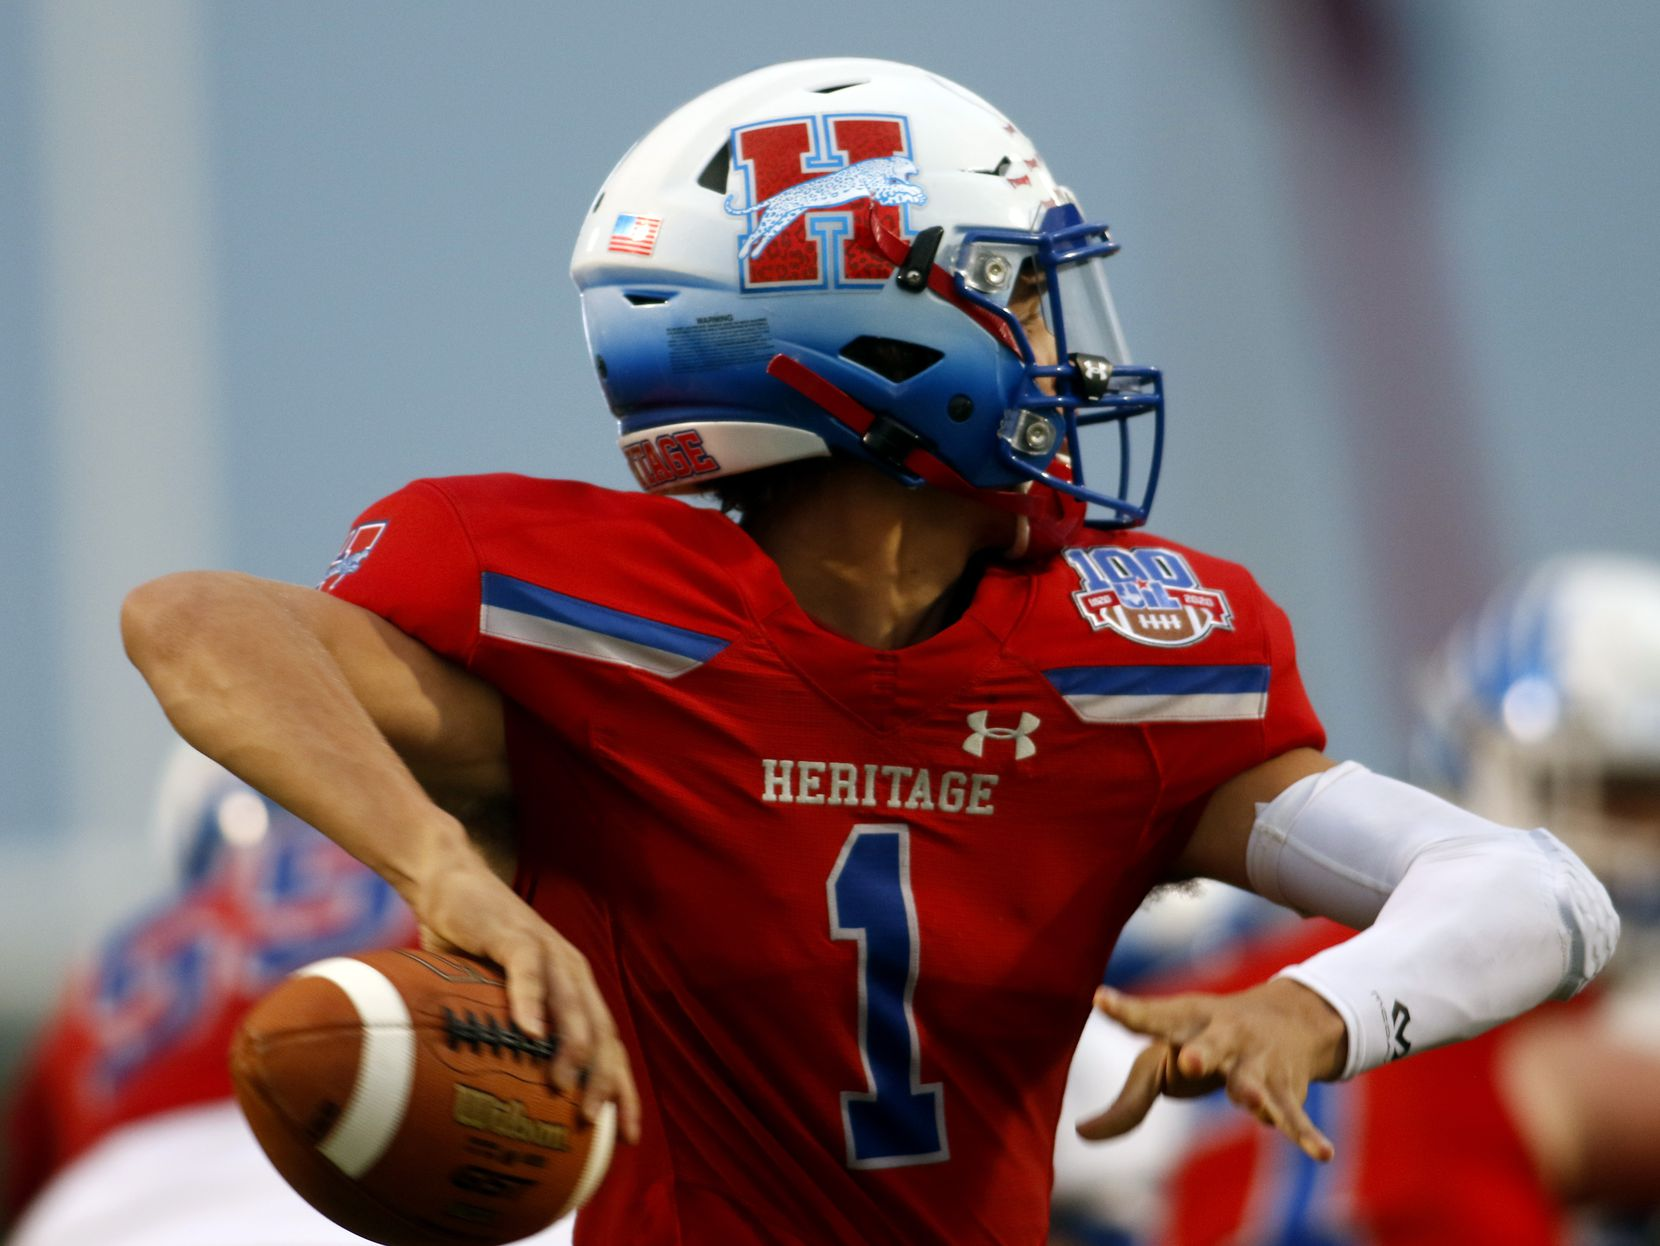 Midlothian Heritage quarterback Daelin Rader (1) looks to pass during the first quarter of their game against Lindale. The two teams played their Class 4A football game at Midlothian ISD Multipurpose Stadium in Midlothian on September 4, 2020. (Steve Hamm/ Special Contributor)